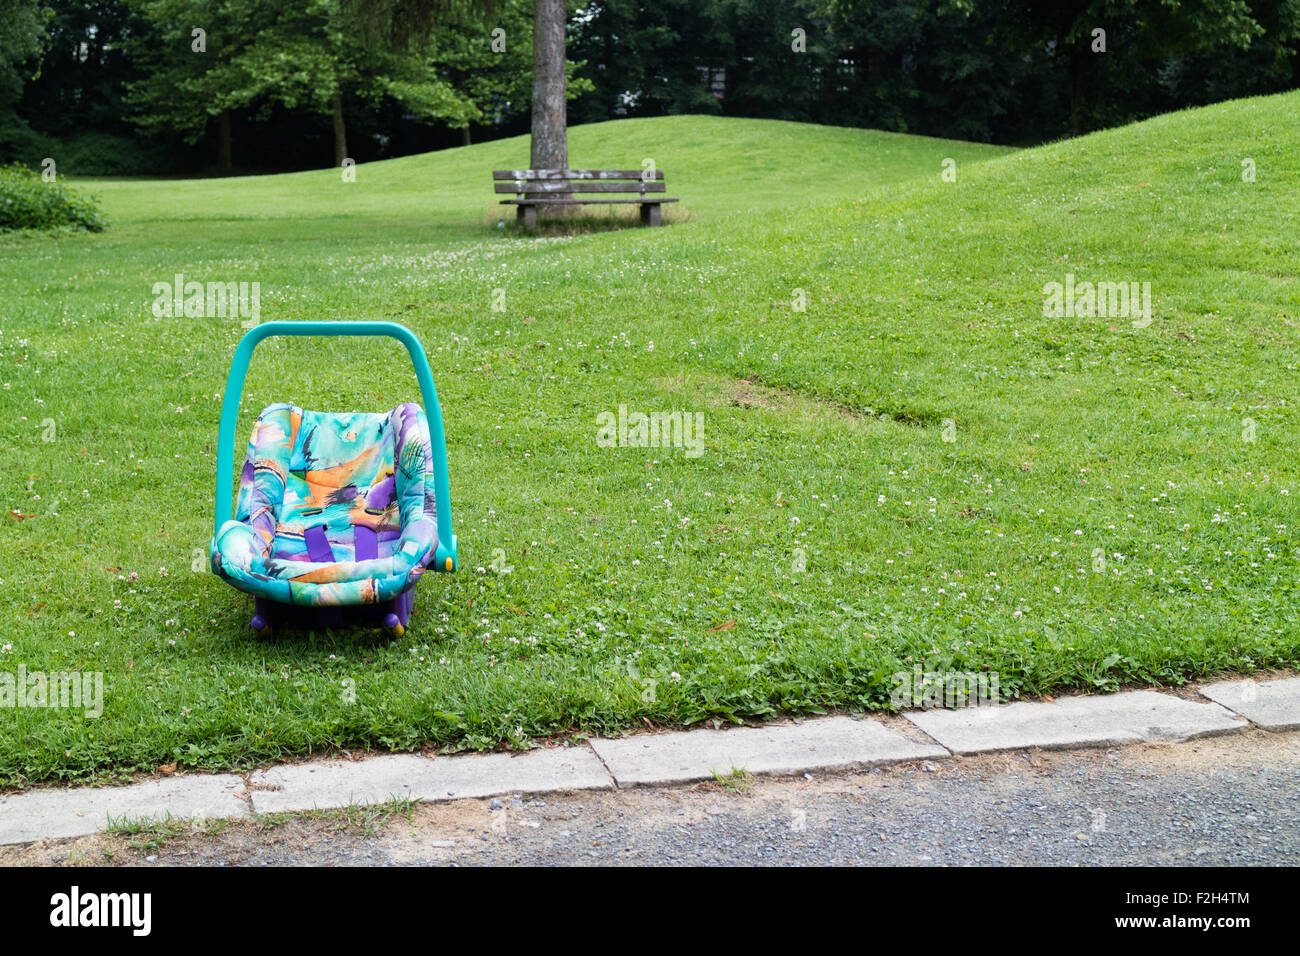 An abandoned baby's car seat in a park - Stock Image